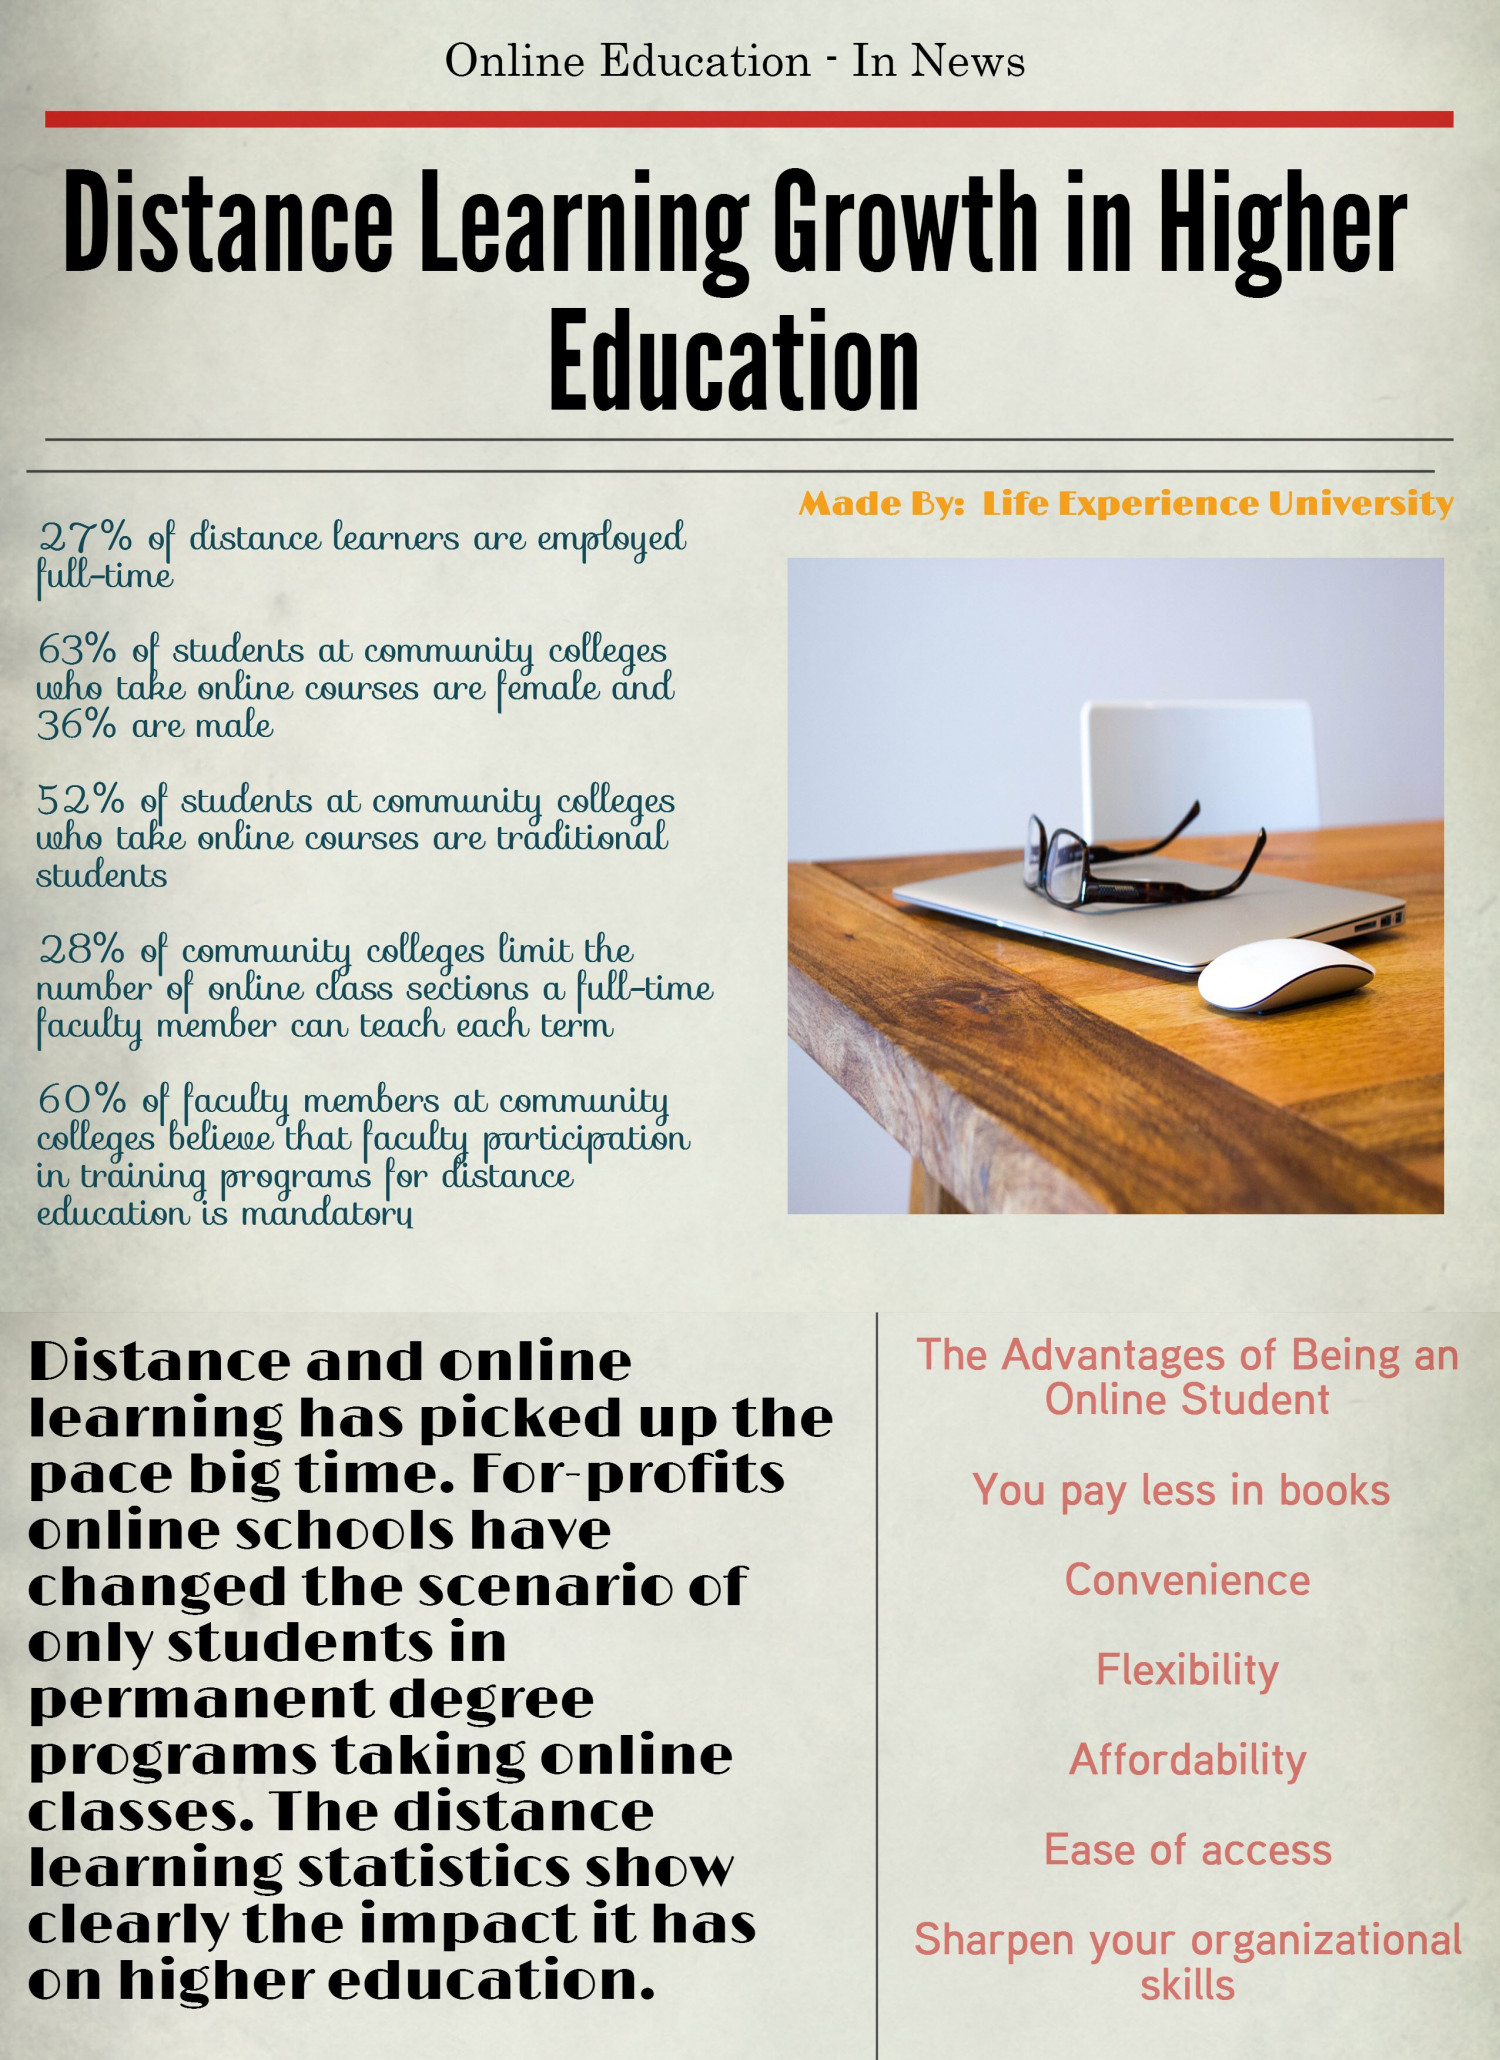 Distance Learning Growth in Higher Education Infographic